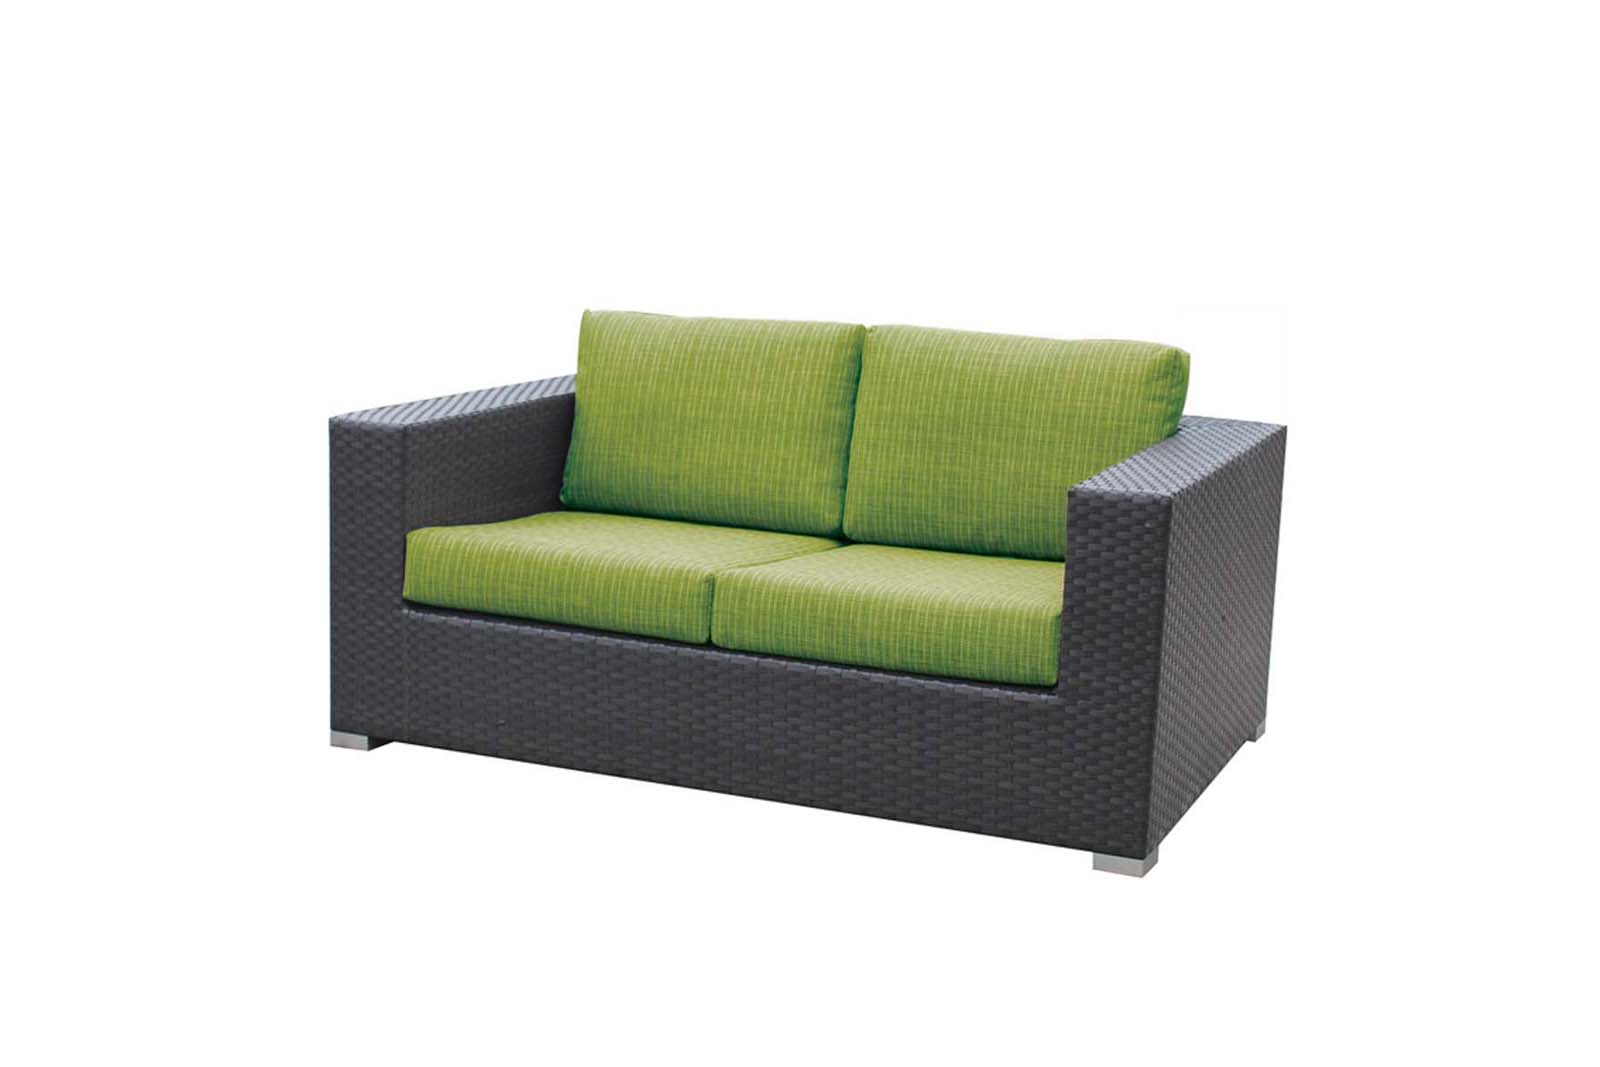 Brisbane Love Seat Ratana | Shop Patio Bay